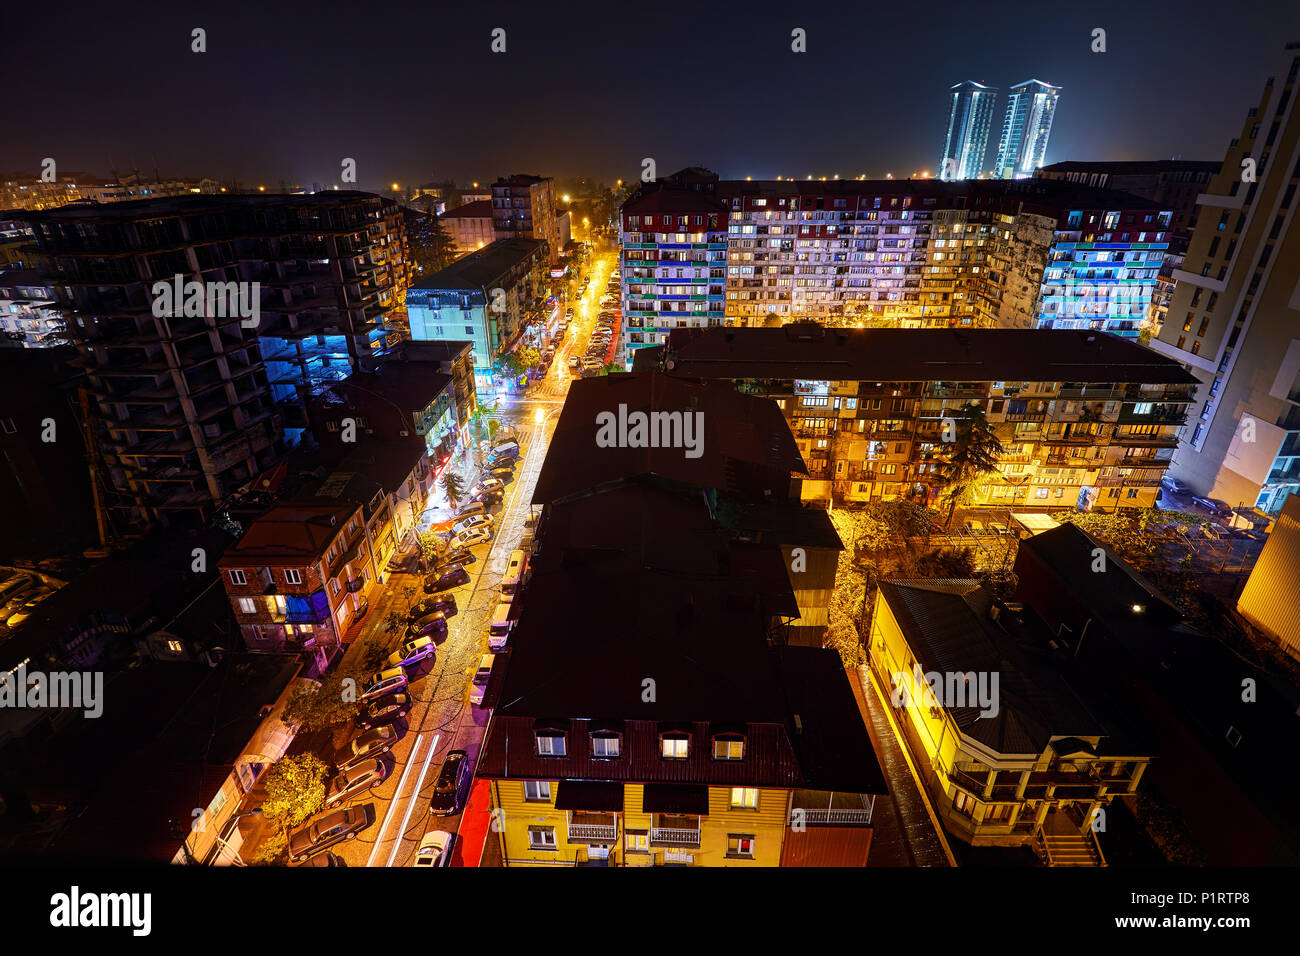 BATUMI, GEORGIA – OCTOBER 3, 2017: Night streets of city with illumination. View from the roof of skyscraper. - Stock Image